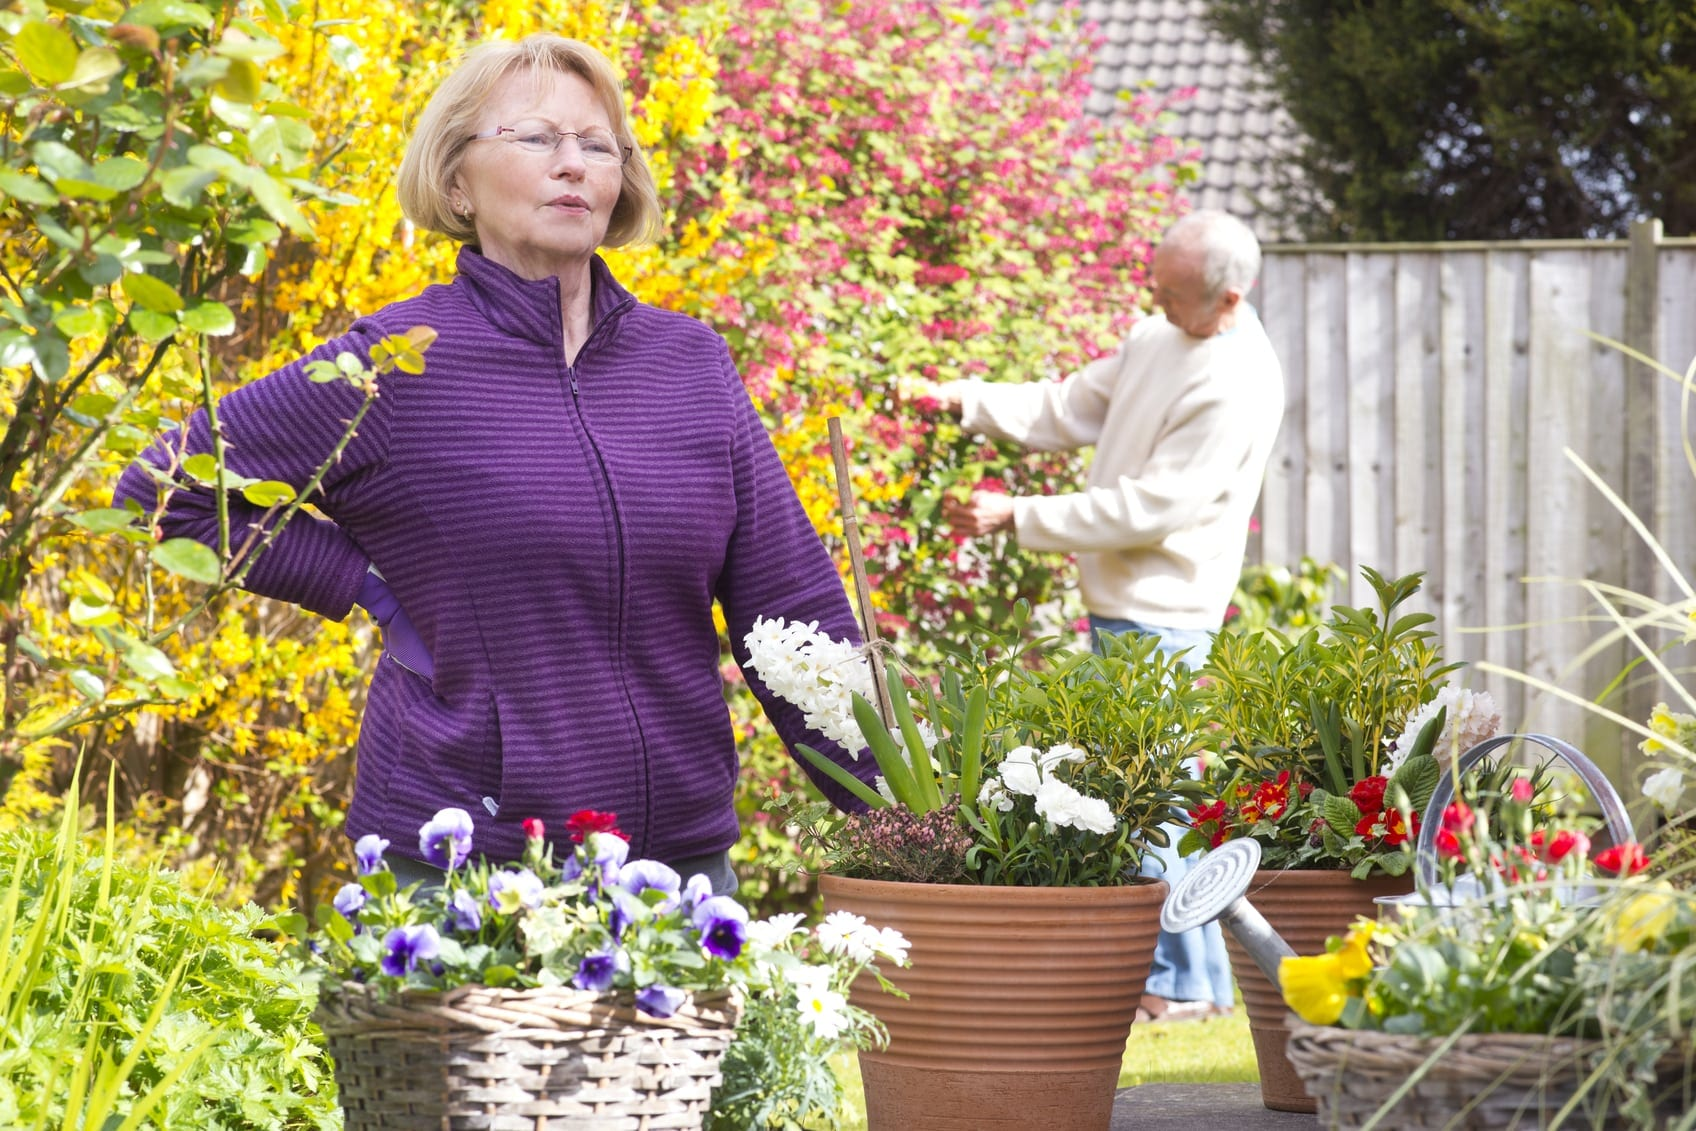 Elderly Woman Experiencing Lower Back Pain While Gardening Stock Photo